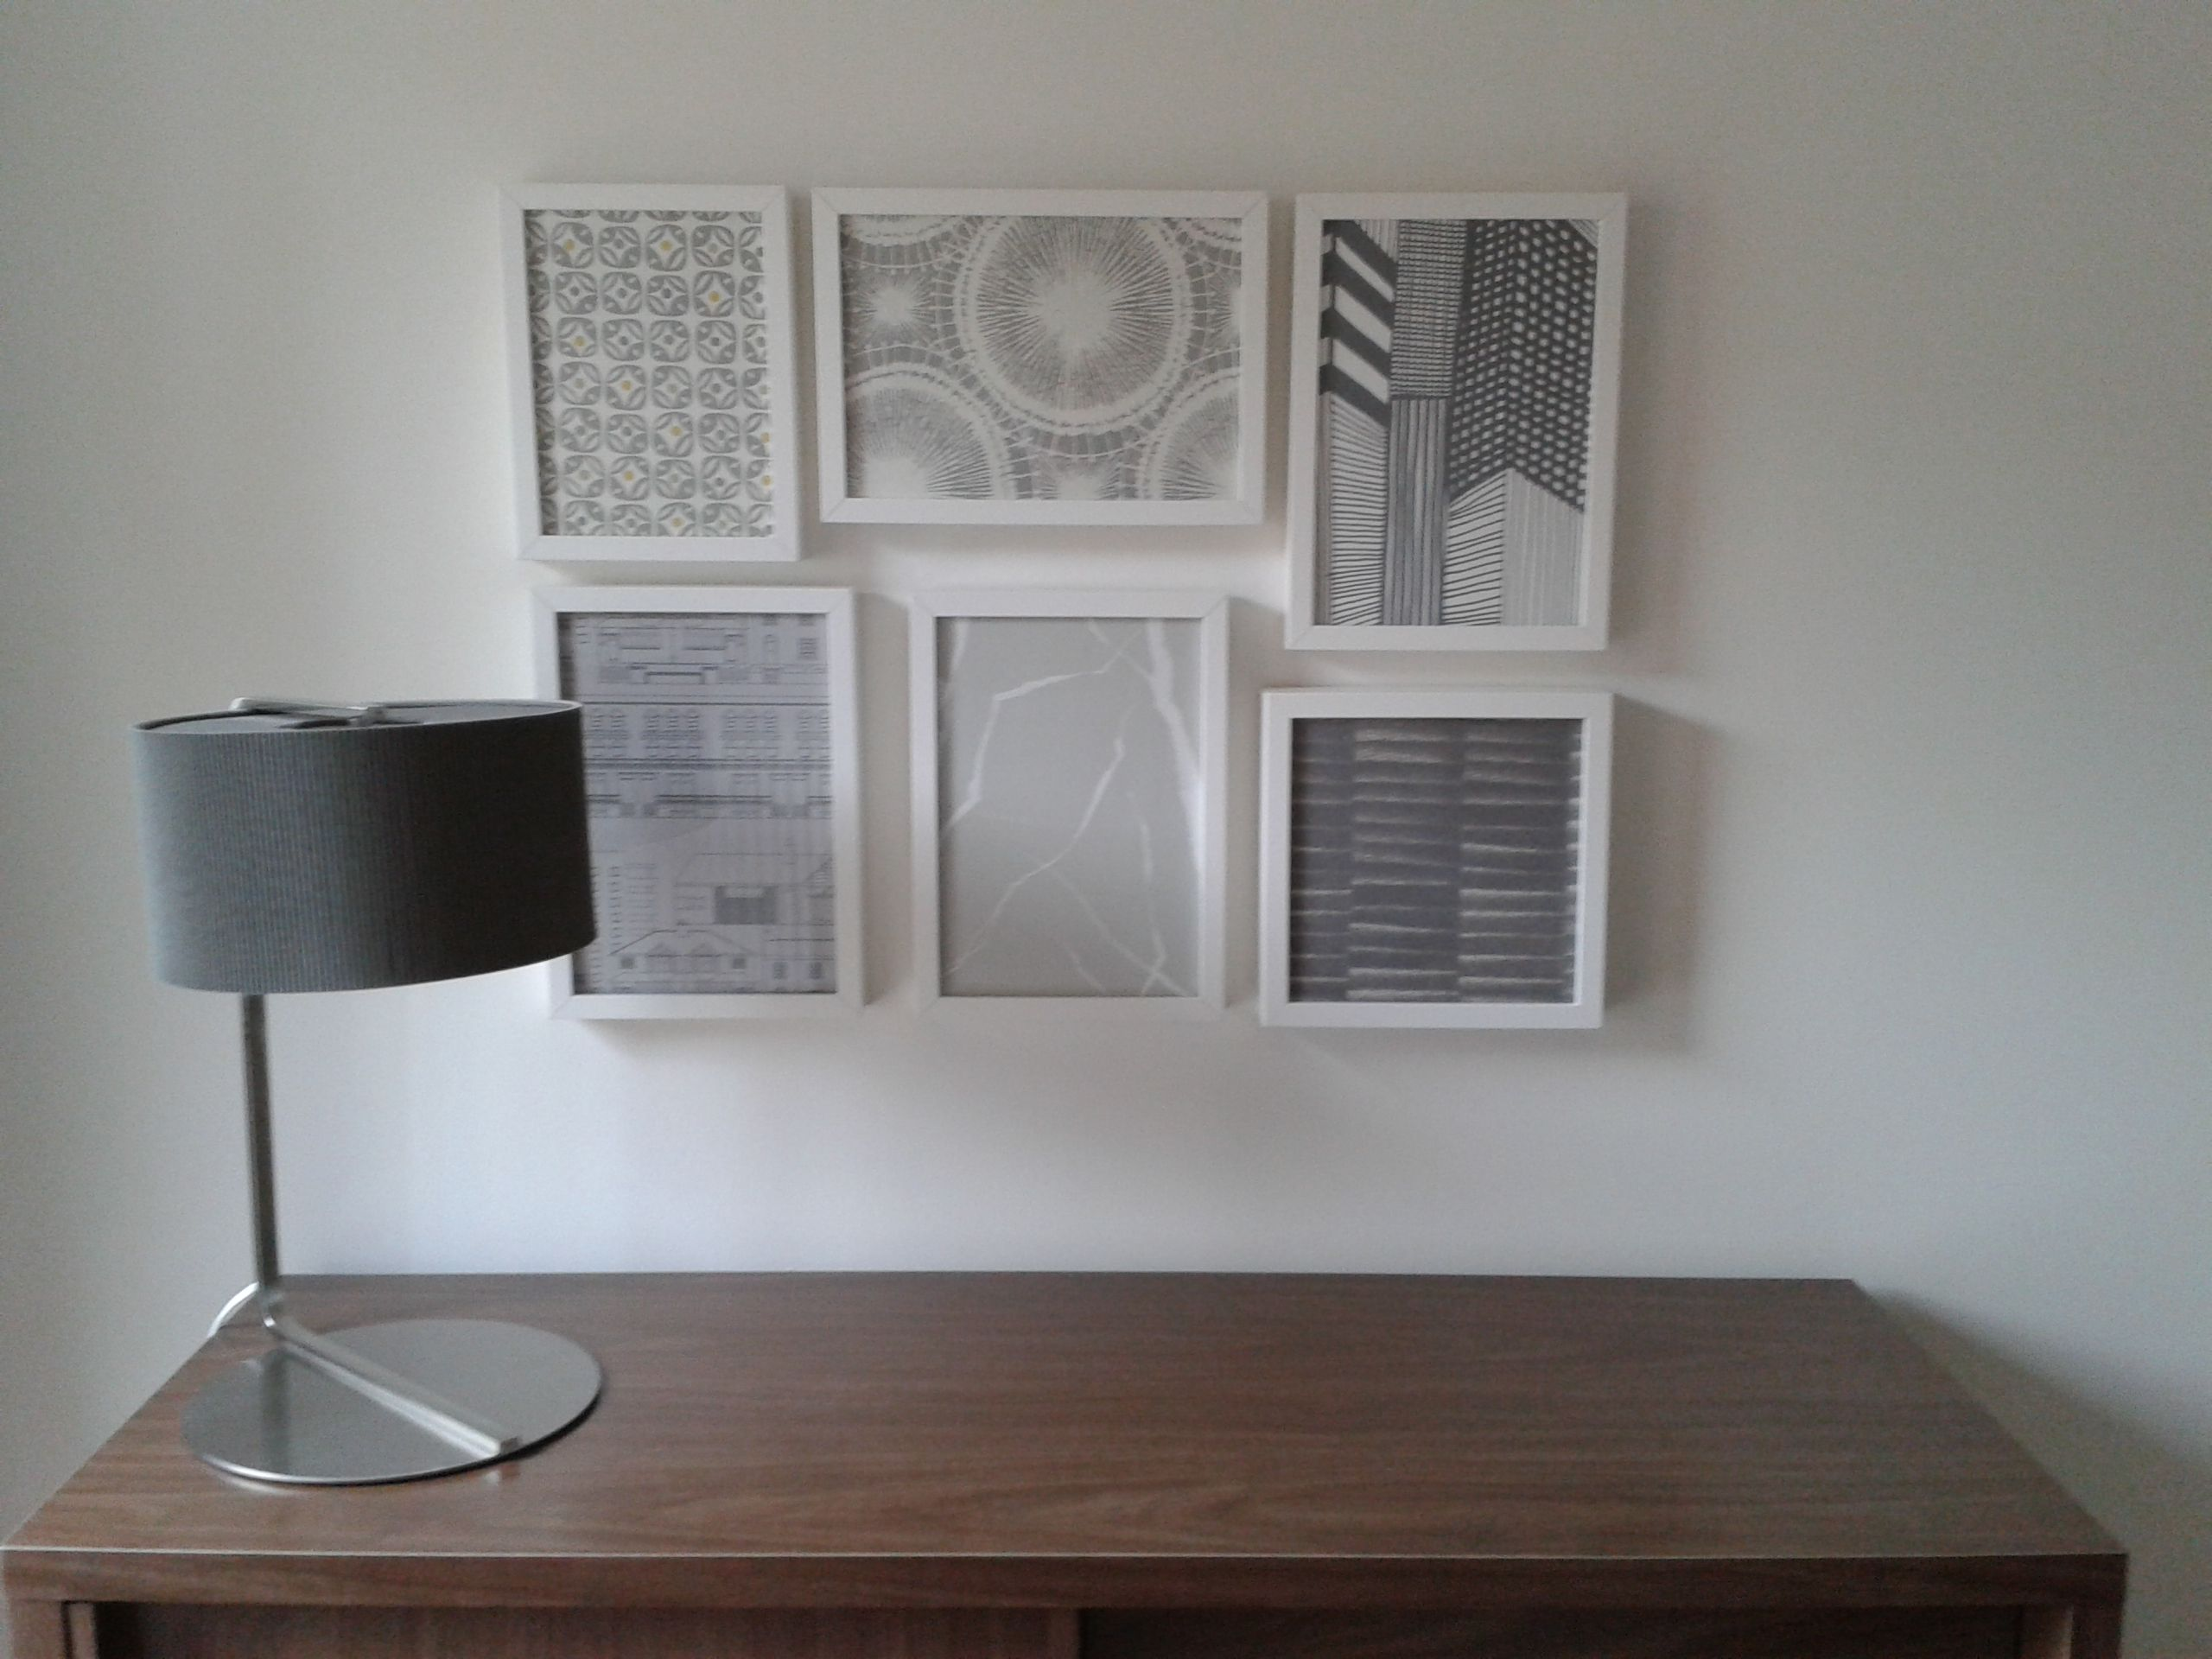 Wallpaper Samples In Grey Tones Framed In Ikea Ribba